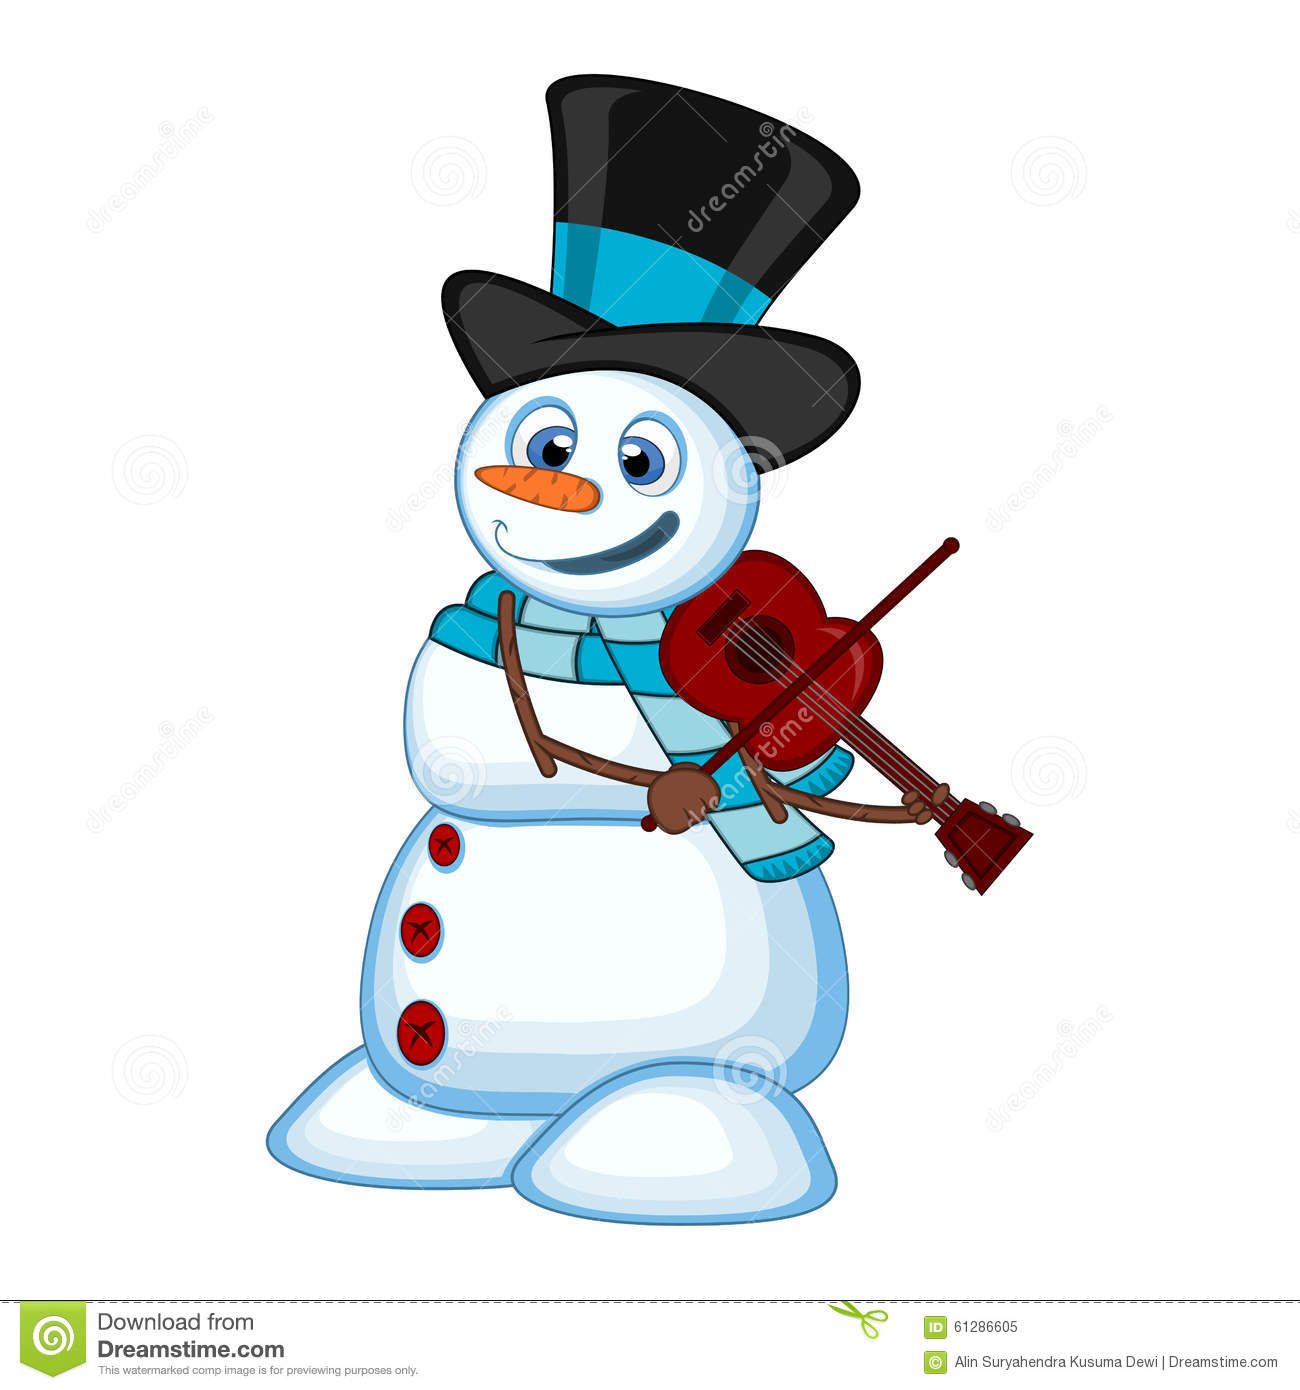 Snowman With Hat And Blue Scarf Playing The Violin For Your Design.